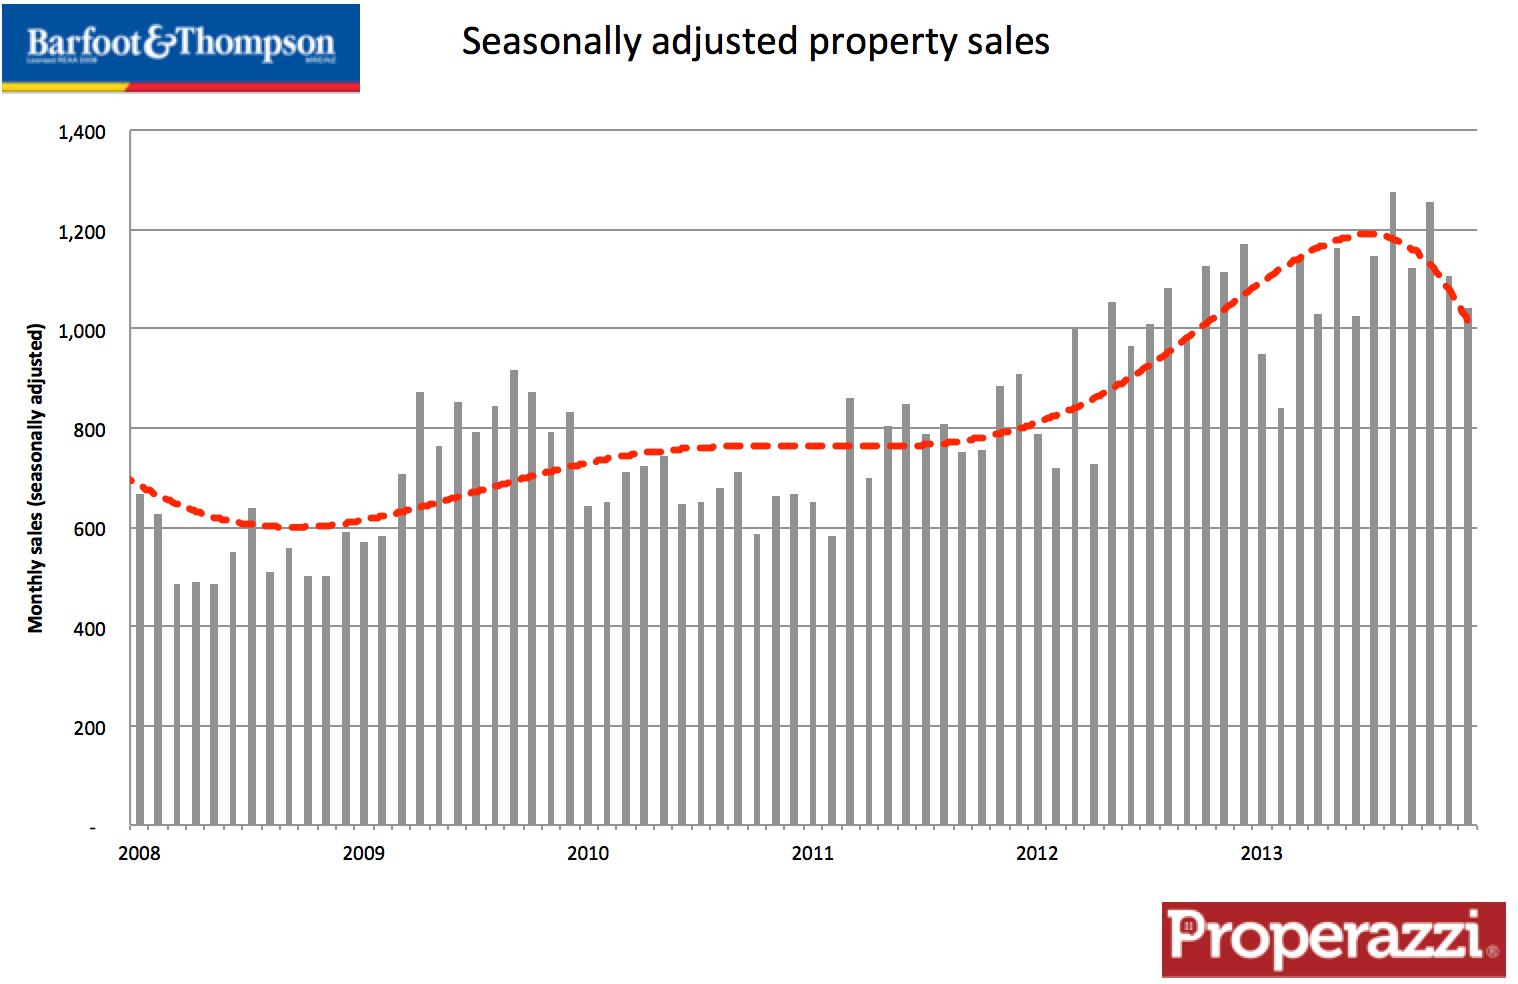 Barfoot & Thompson seasonally adjusted sales 2013.png